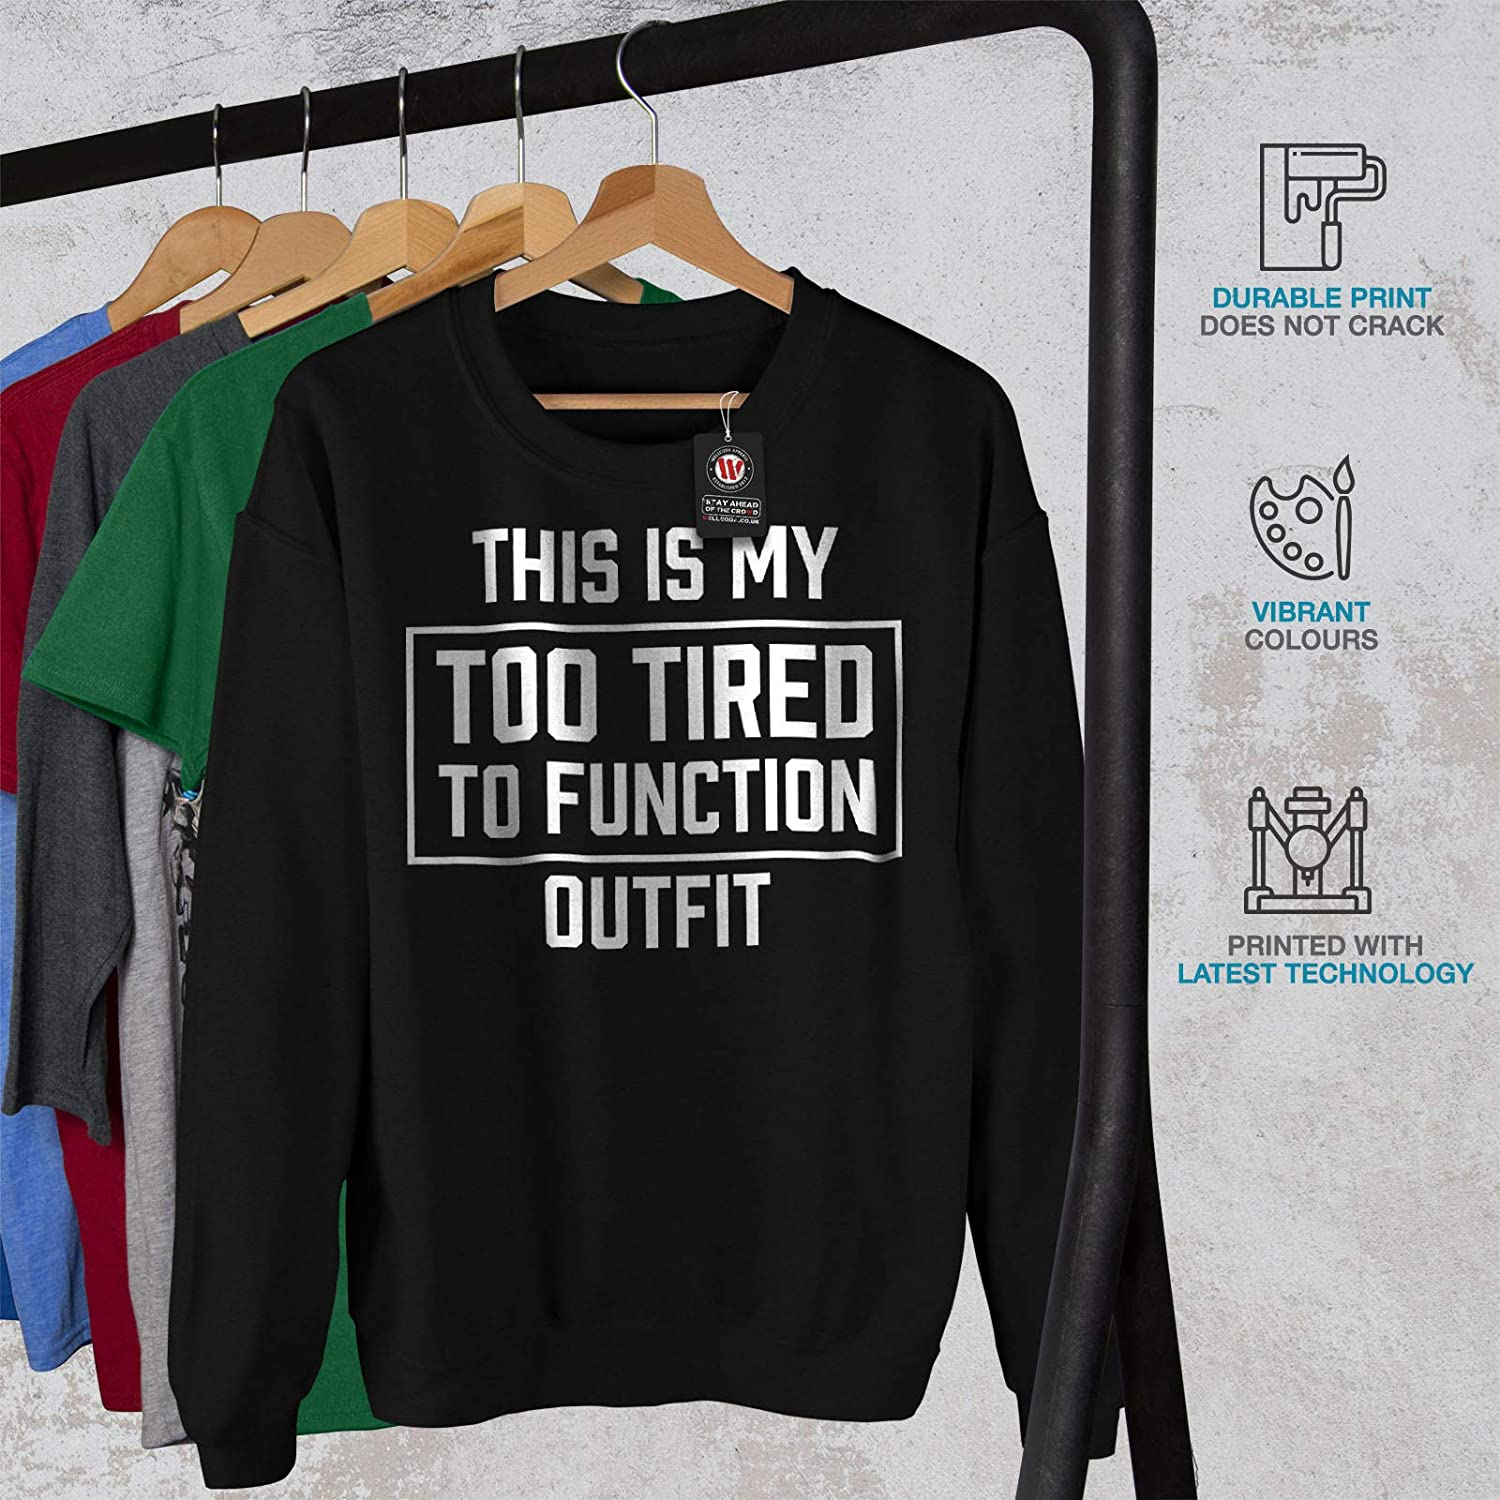 wellcoda Too Tired Outfit Mens Sweatshirt Get Rest Casual Jumper